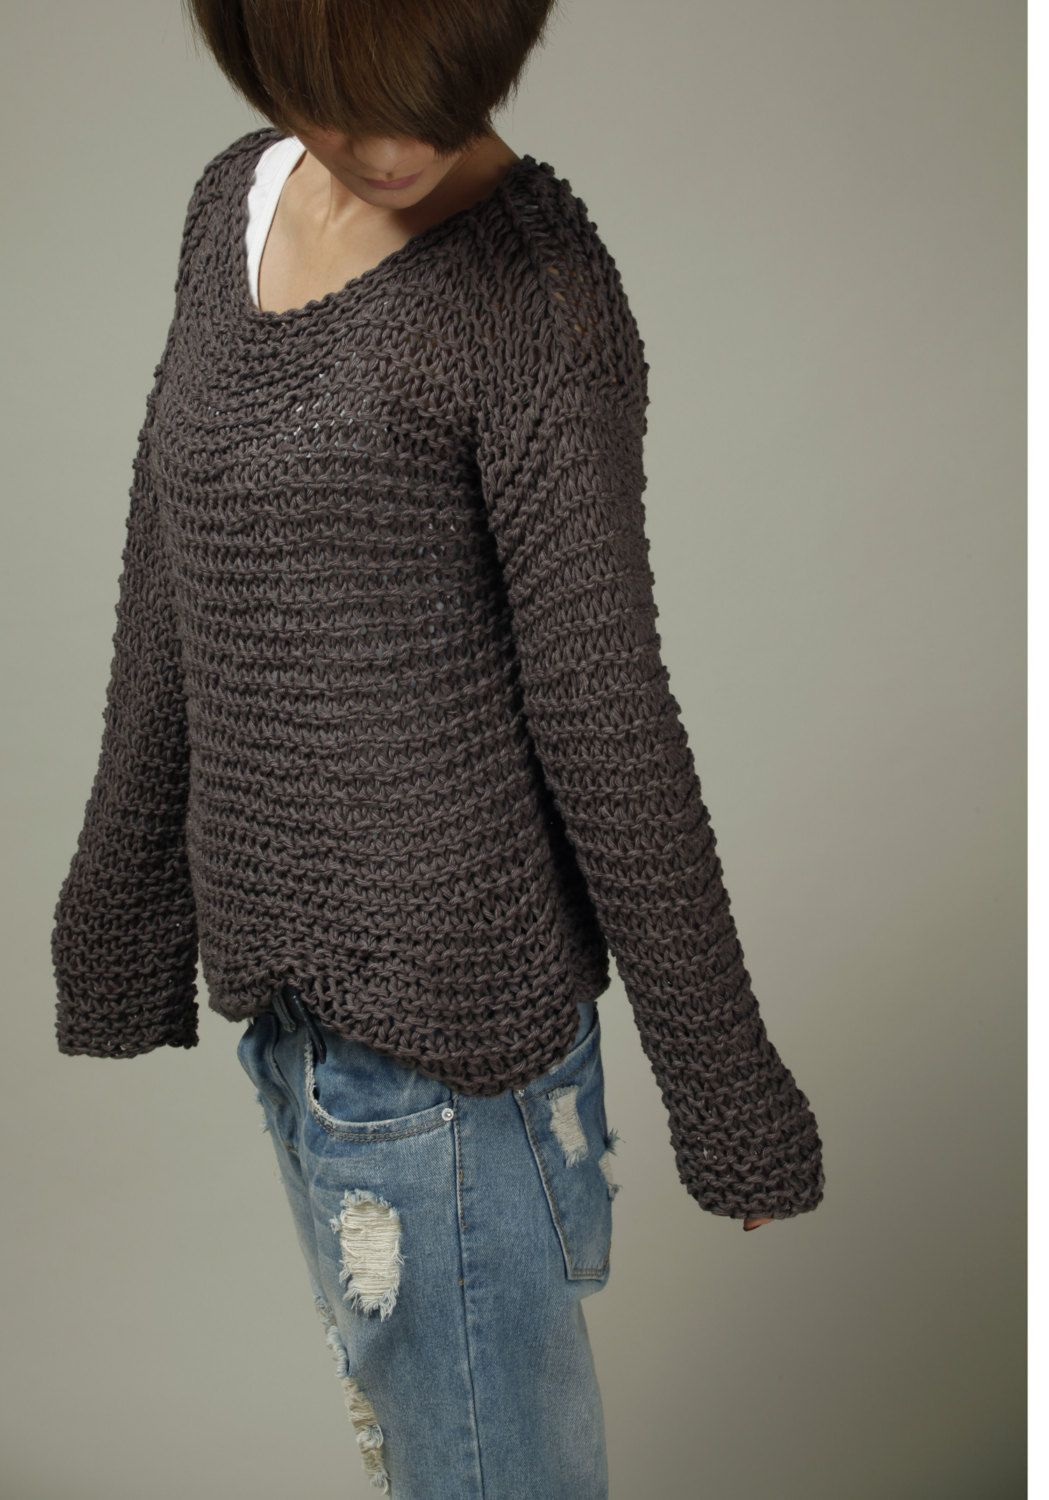 Handknit cotton sweater in Charcoal | Chunky Knits | Pinterest ...